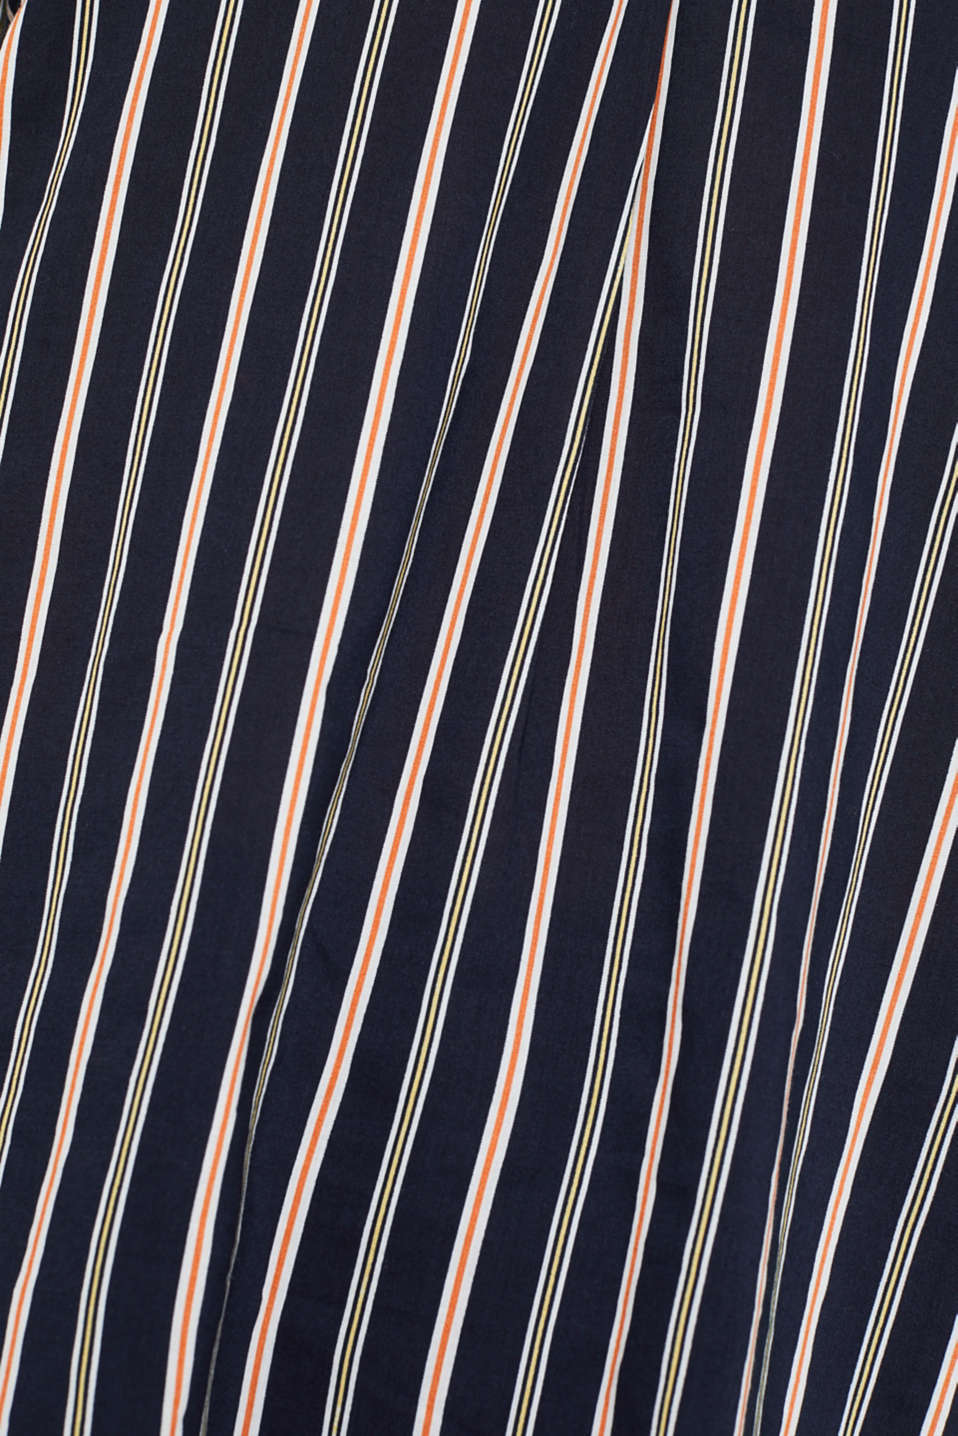 Slip-on blouse with stripes, NAVY, detail image number 4